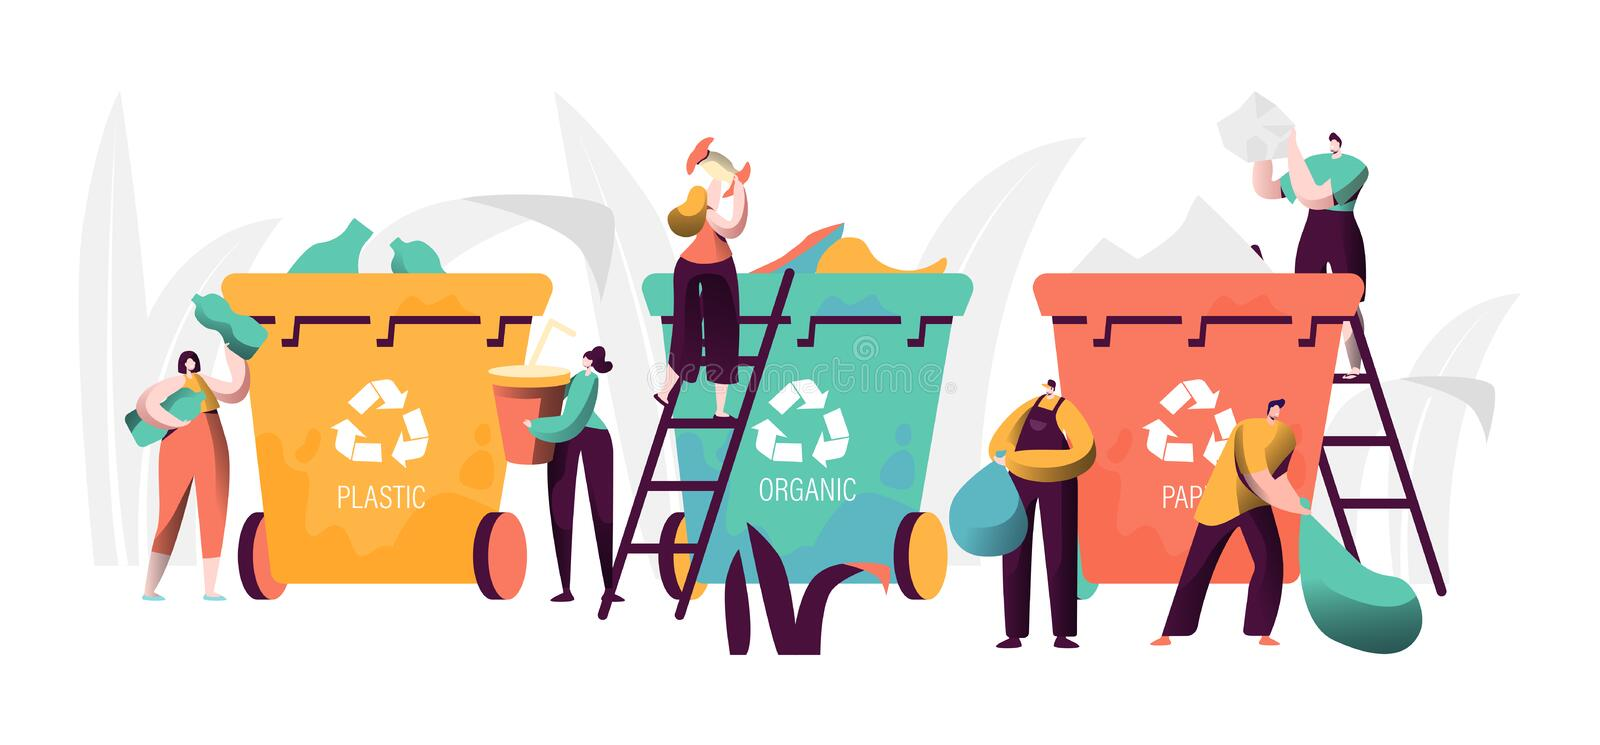 Trash Recycling Industrial Concept. People Characters Sorting Garbage Waste. Saving Earth Ecology Environmental royalty free illustration